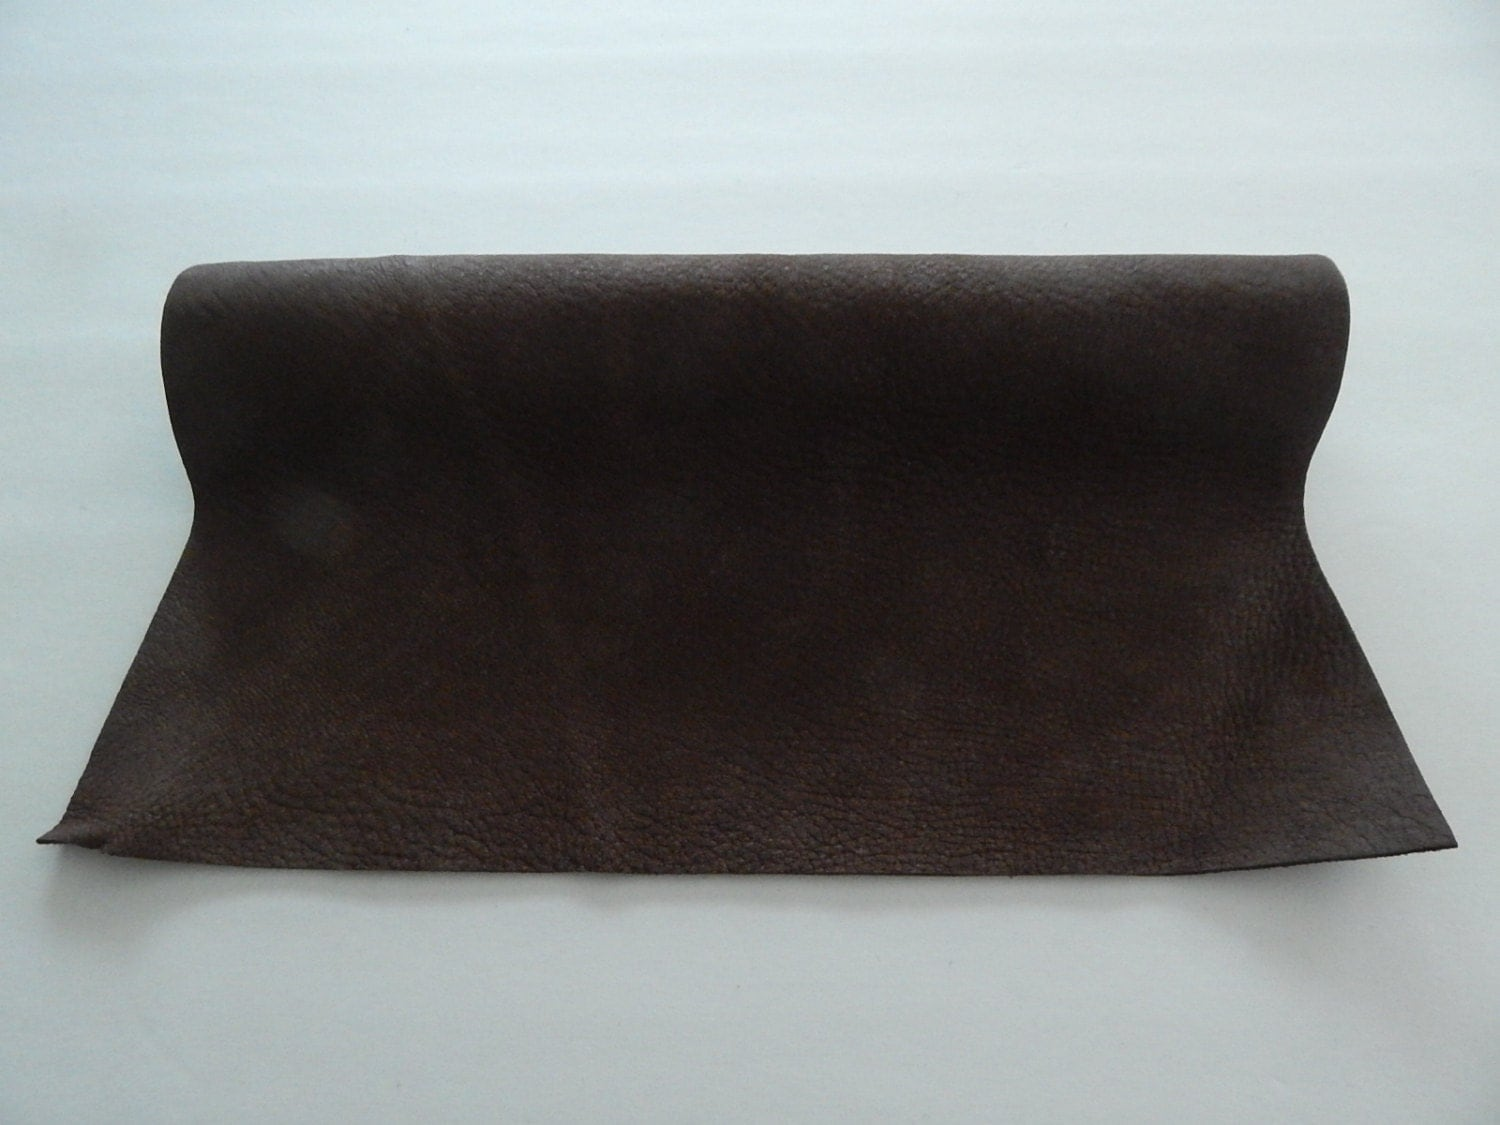 Chocolate milk tanned deerskin leather perfect for for Leather sheets for crafting